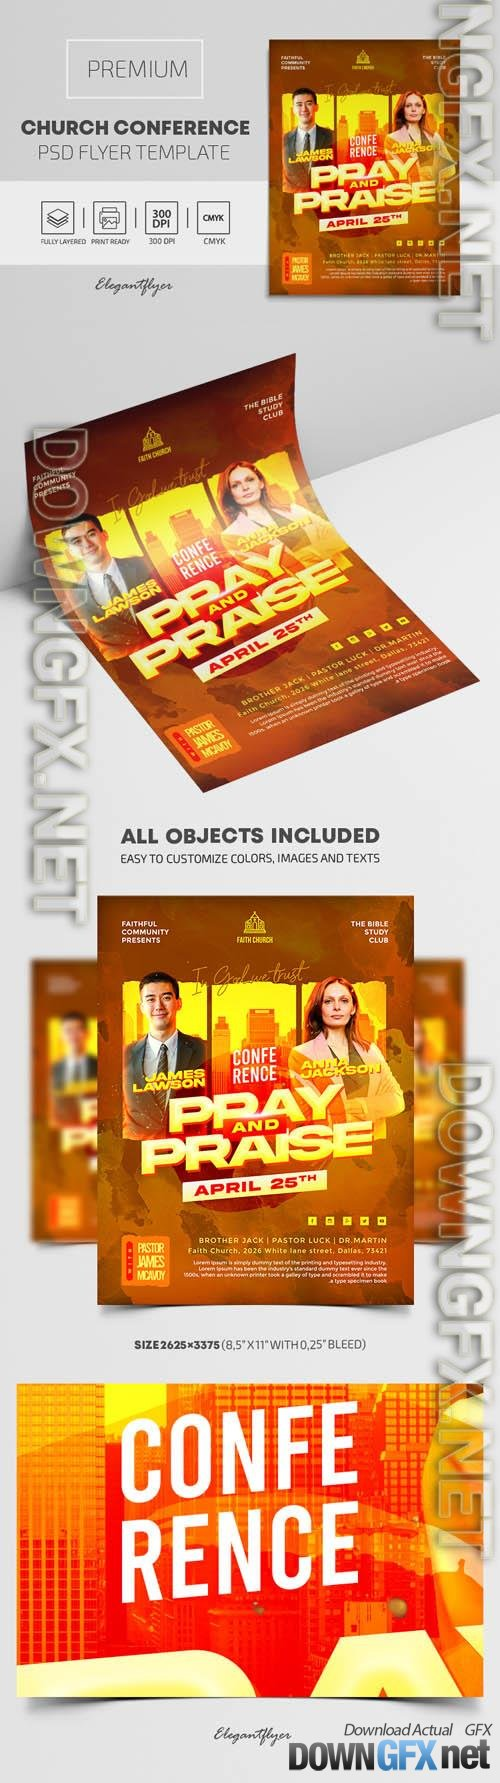 Church Conference Premium PSD Flyer Template